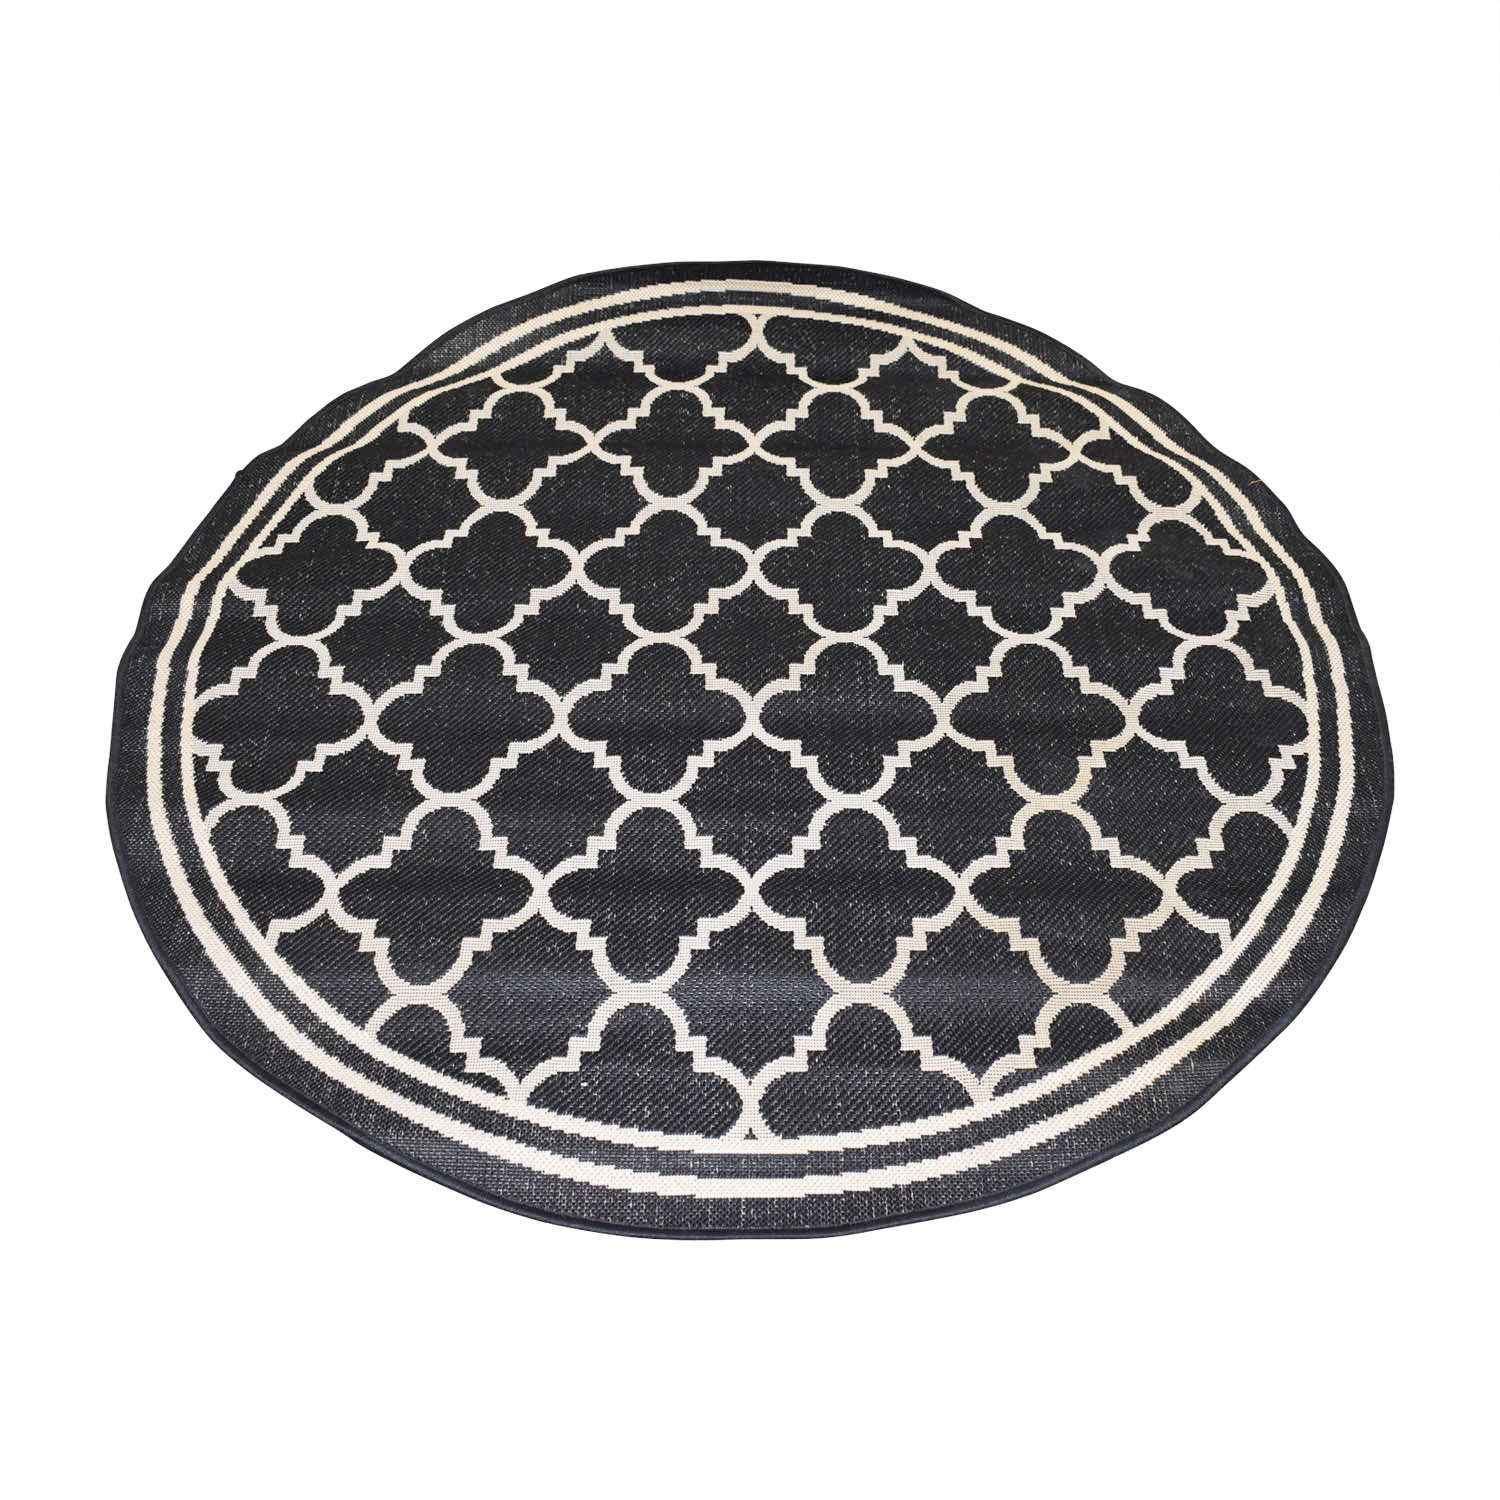 Safavieh Safavieh Courtyard Round Black Rug coupon